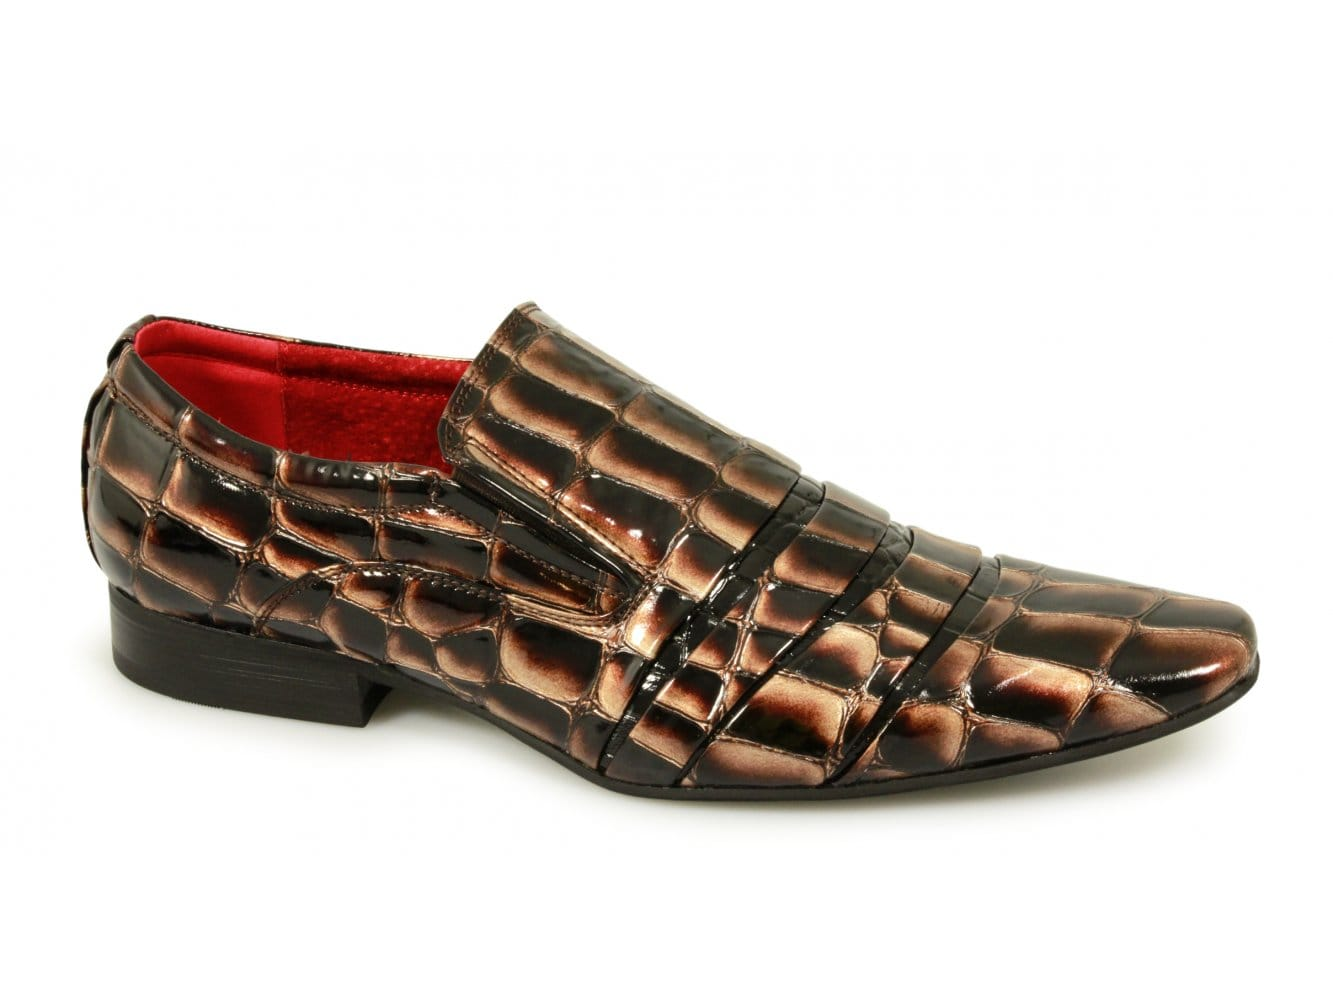 mens reptile skin leather lined slip on shiny formal dress